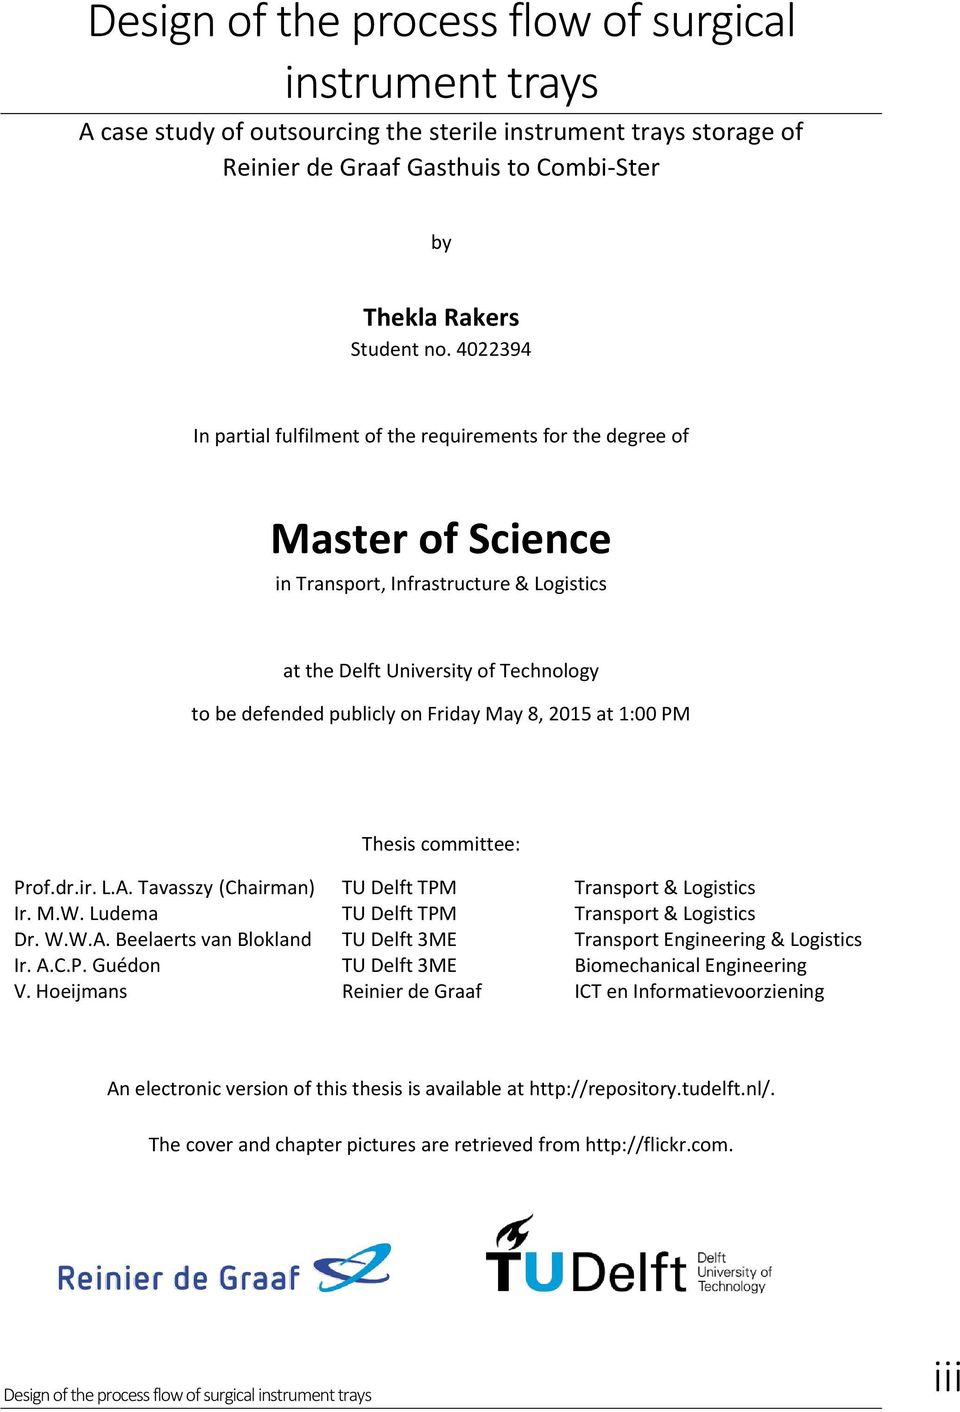 May 8, 2015 at 1:00 PM Thesis committee: Prof.dr.ir. L.A. Tavasszy (Chairman) TU Delft TPM Transport & Logistics Ir. M.W. Ludema TU Delft TPM Transport & Logistics Dr. W.W.A. Beelaerts van Blokland TU Delft 3ME Transport Engineering & Logistics Ir.